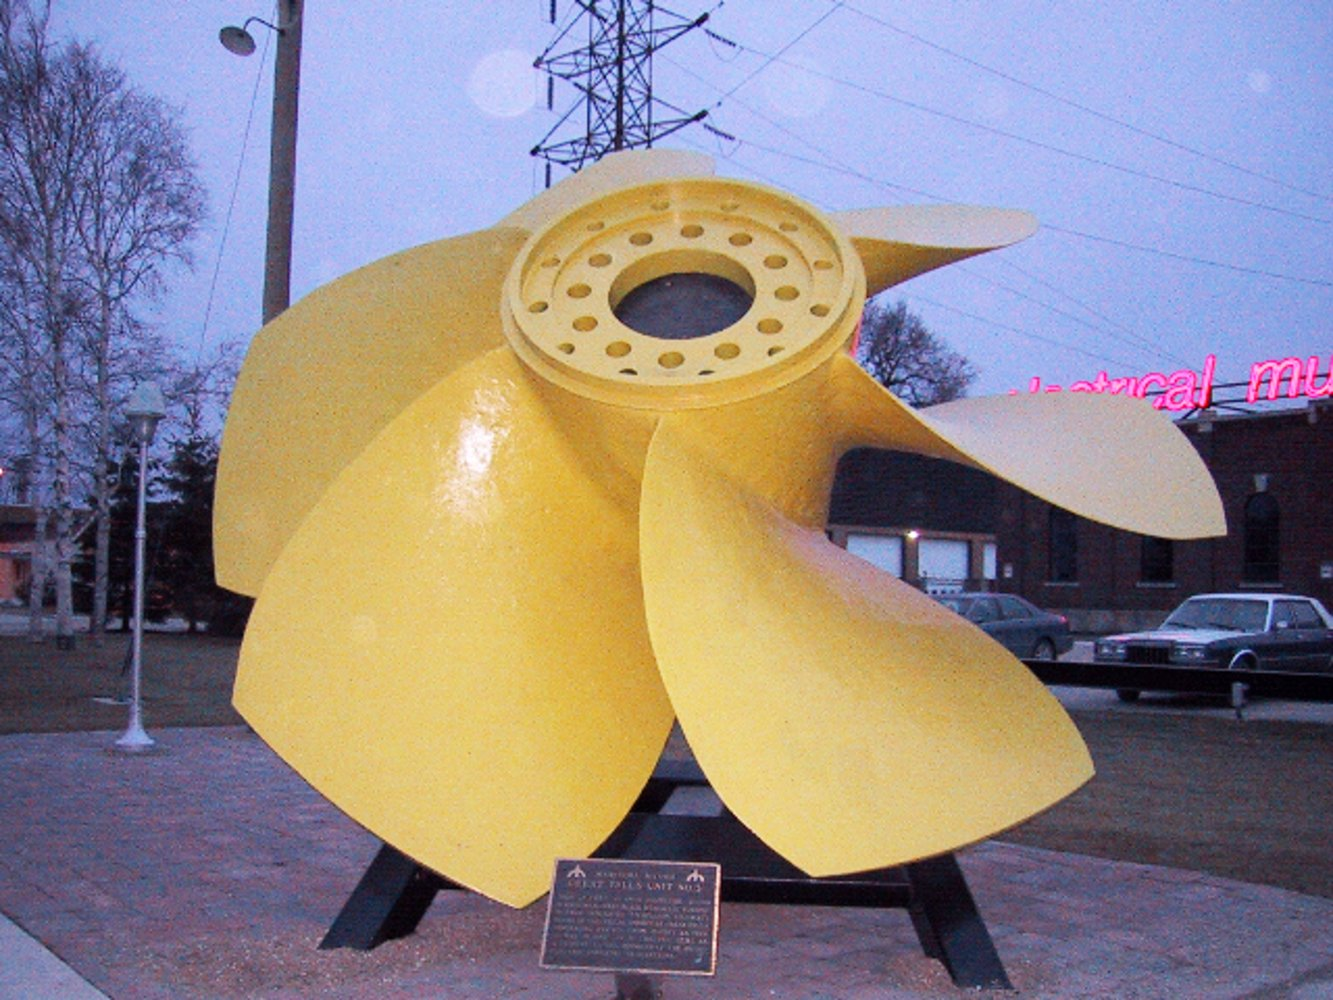 A propeller runner of a hydroelectric turbine